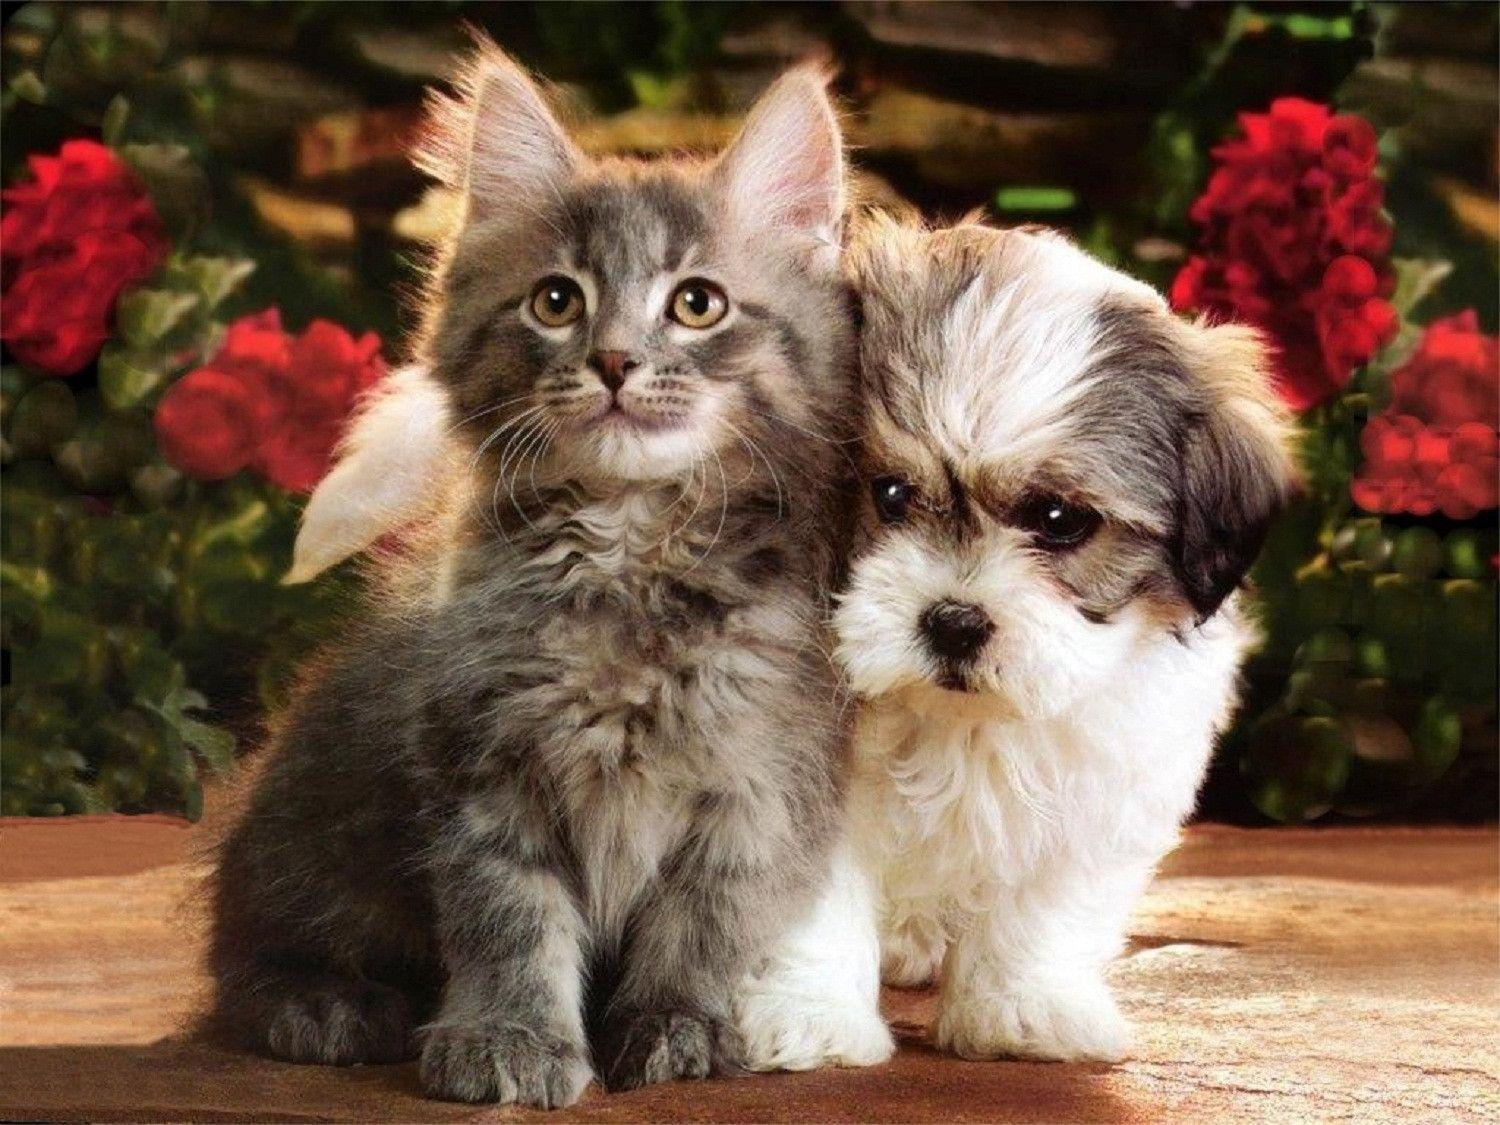 Wallpapers For > Wallpapers Of Puppies And Kittens